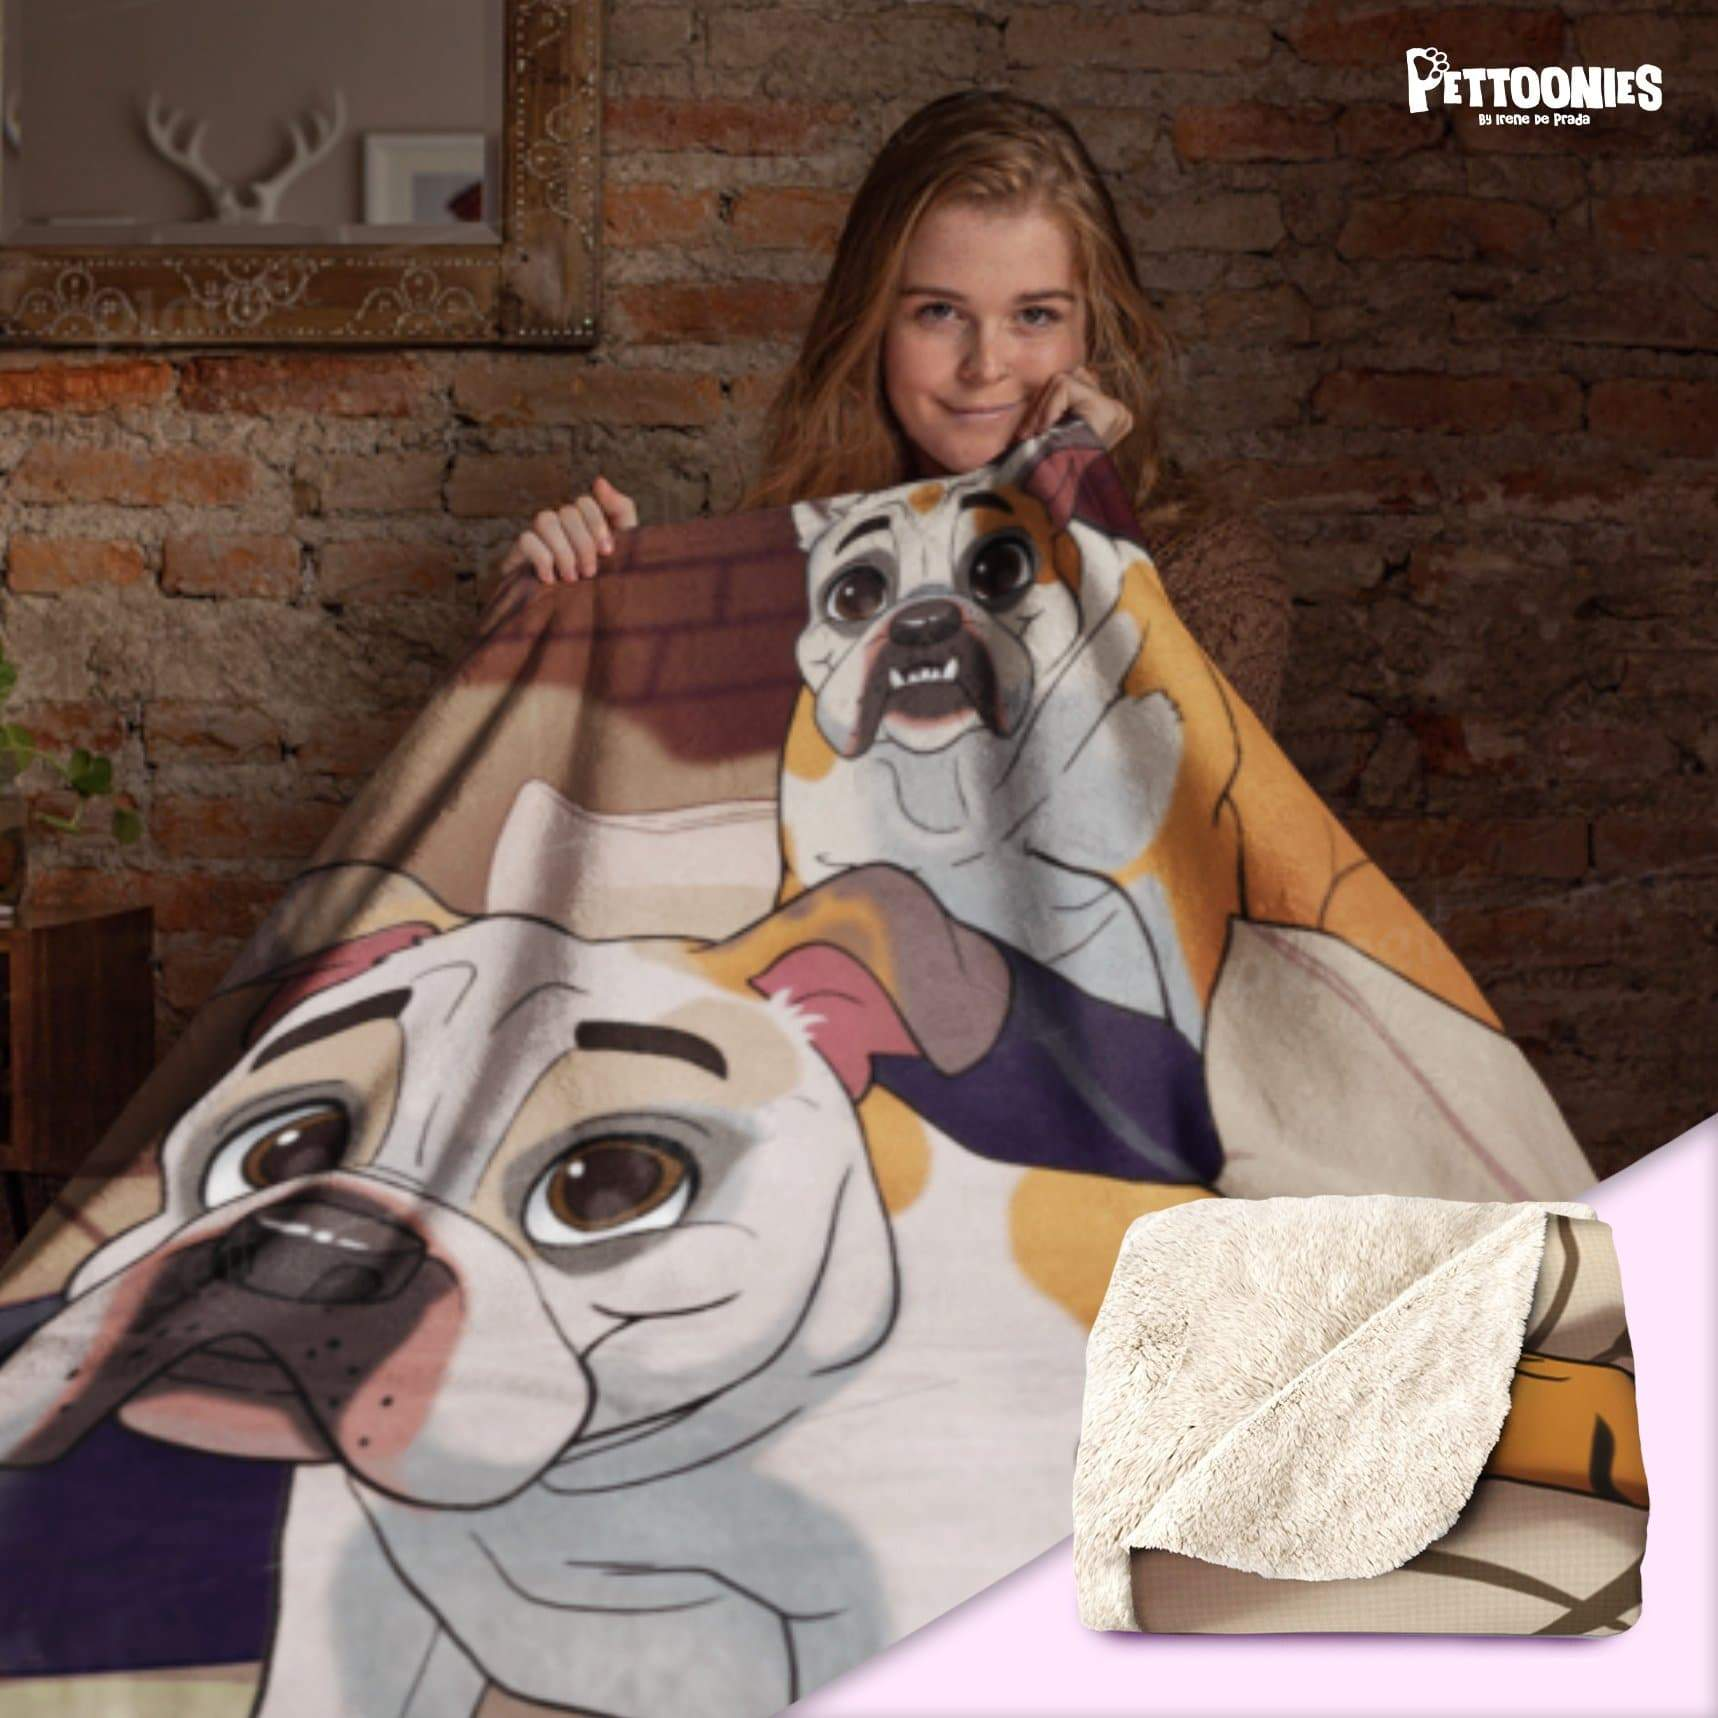 Pettoonies Sherpa Fleece Blanket